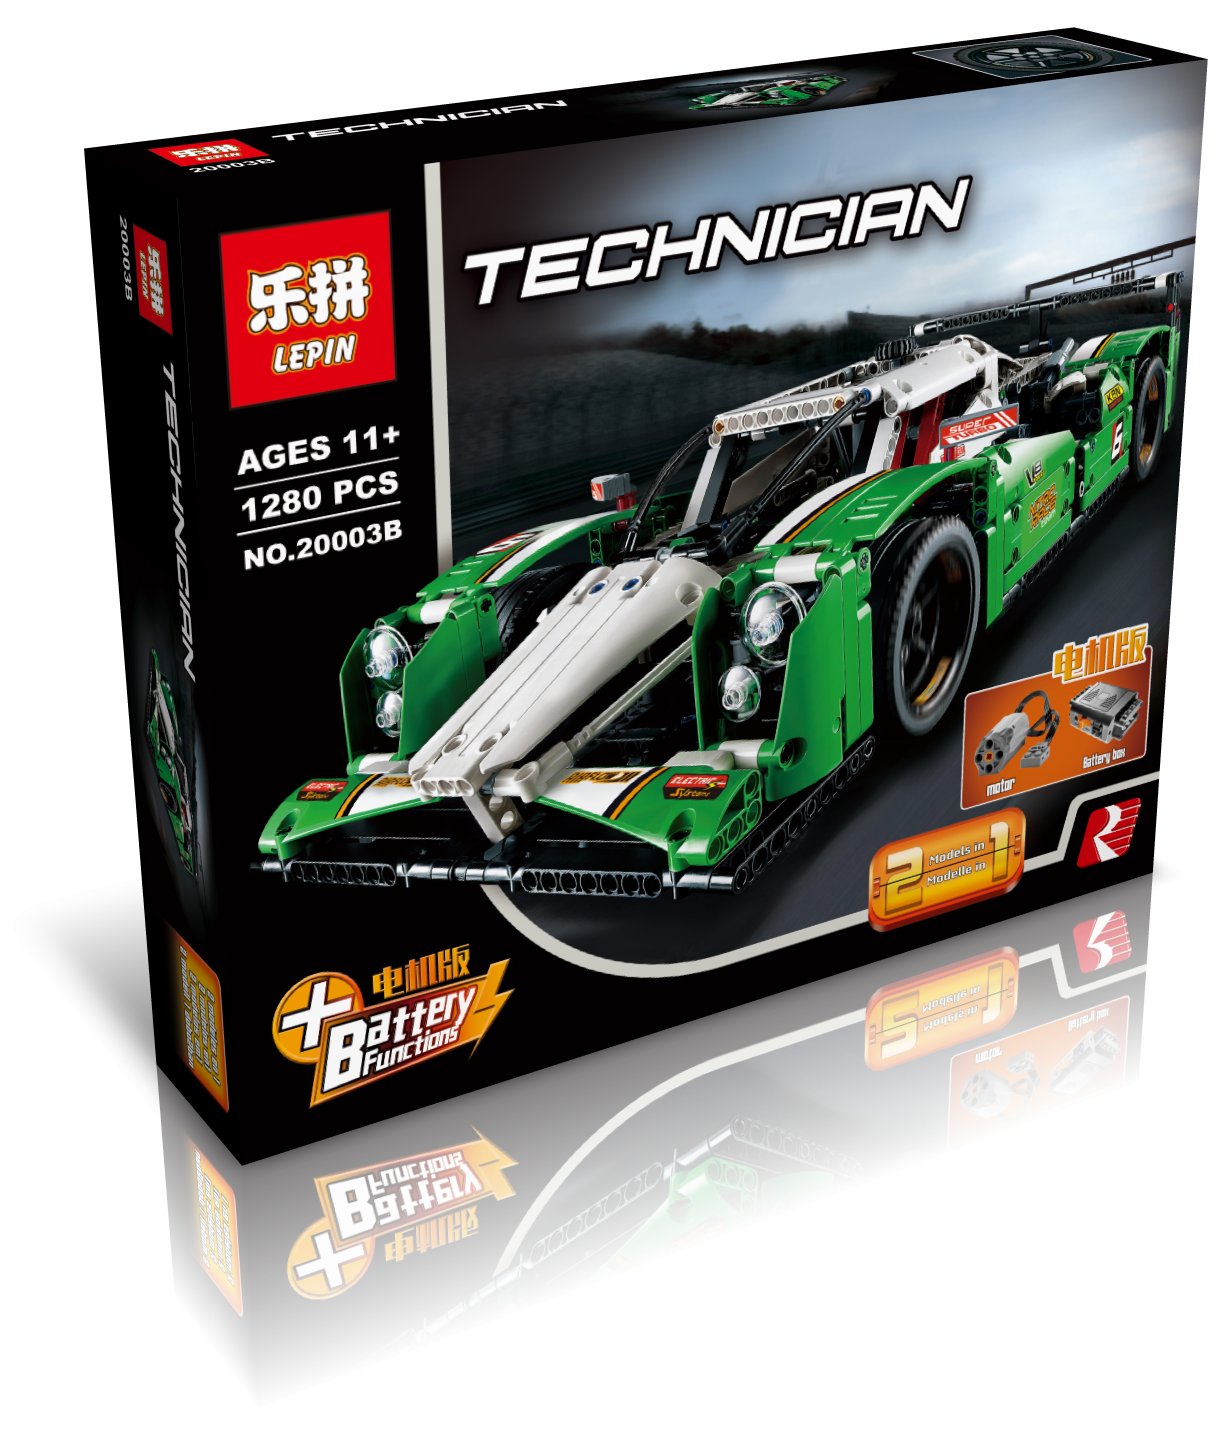 1280+ PCS Building Bricks, LP 20003B Building Blocks Technic 42039 24 Hours Race Car.